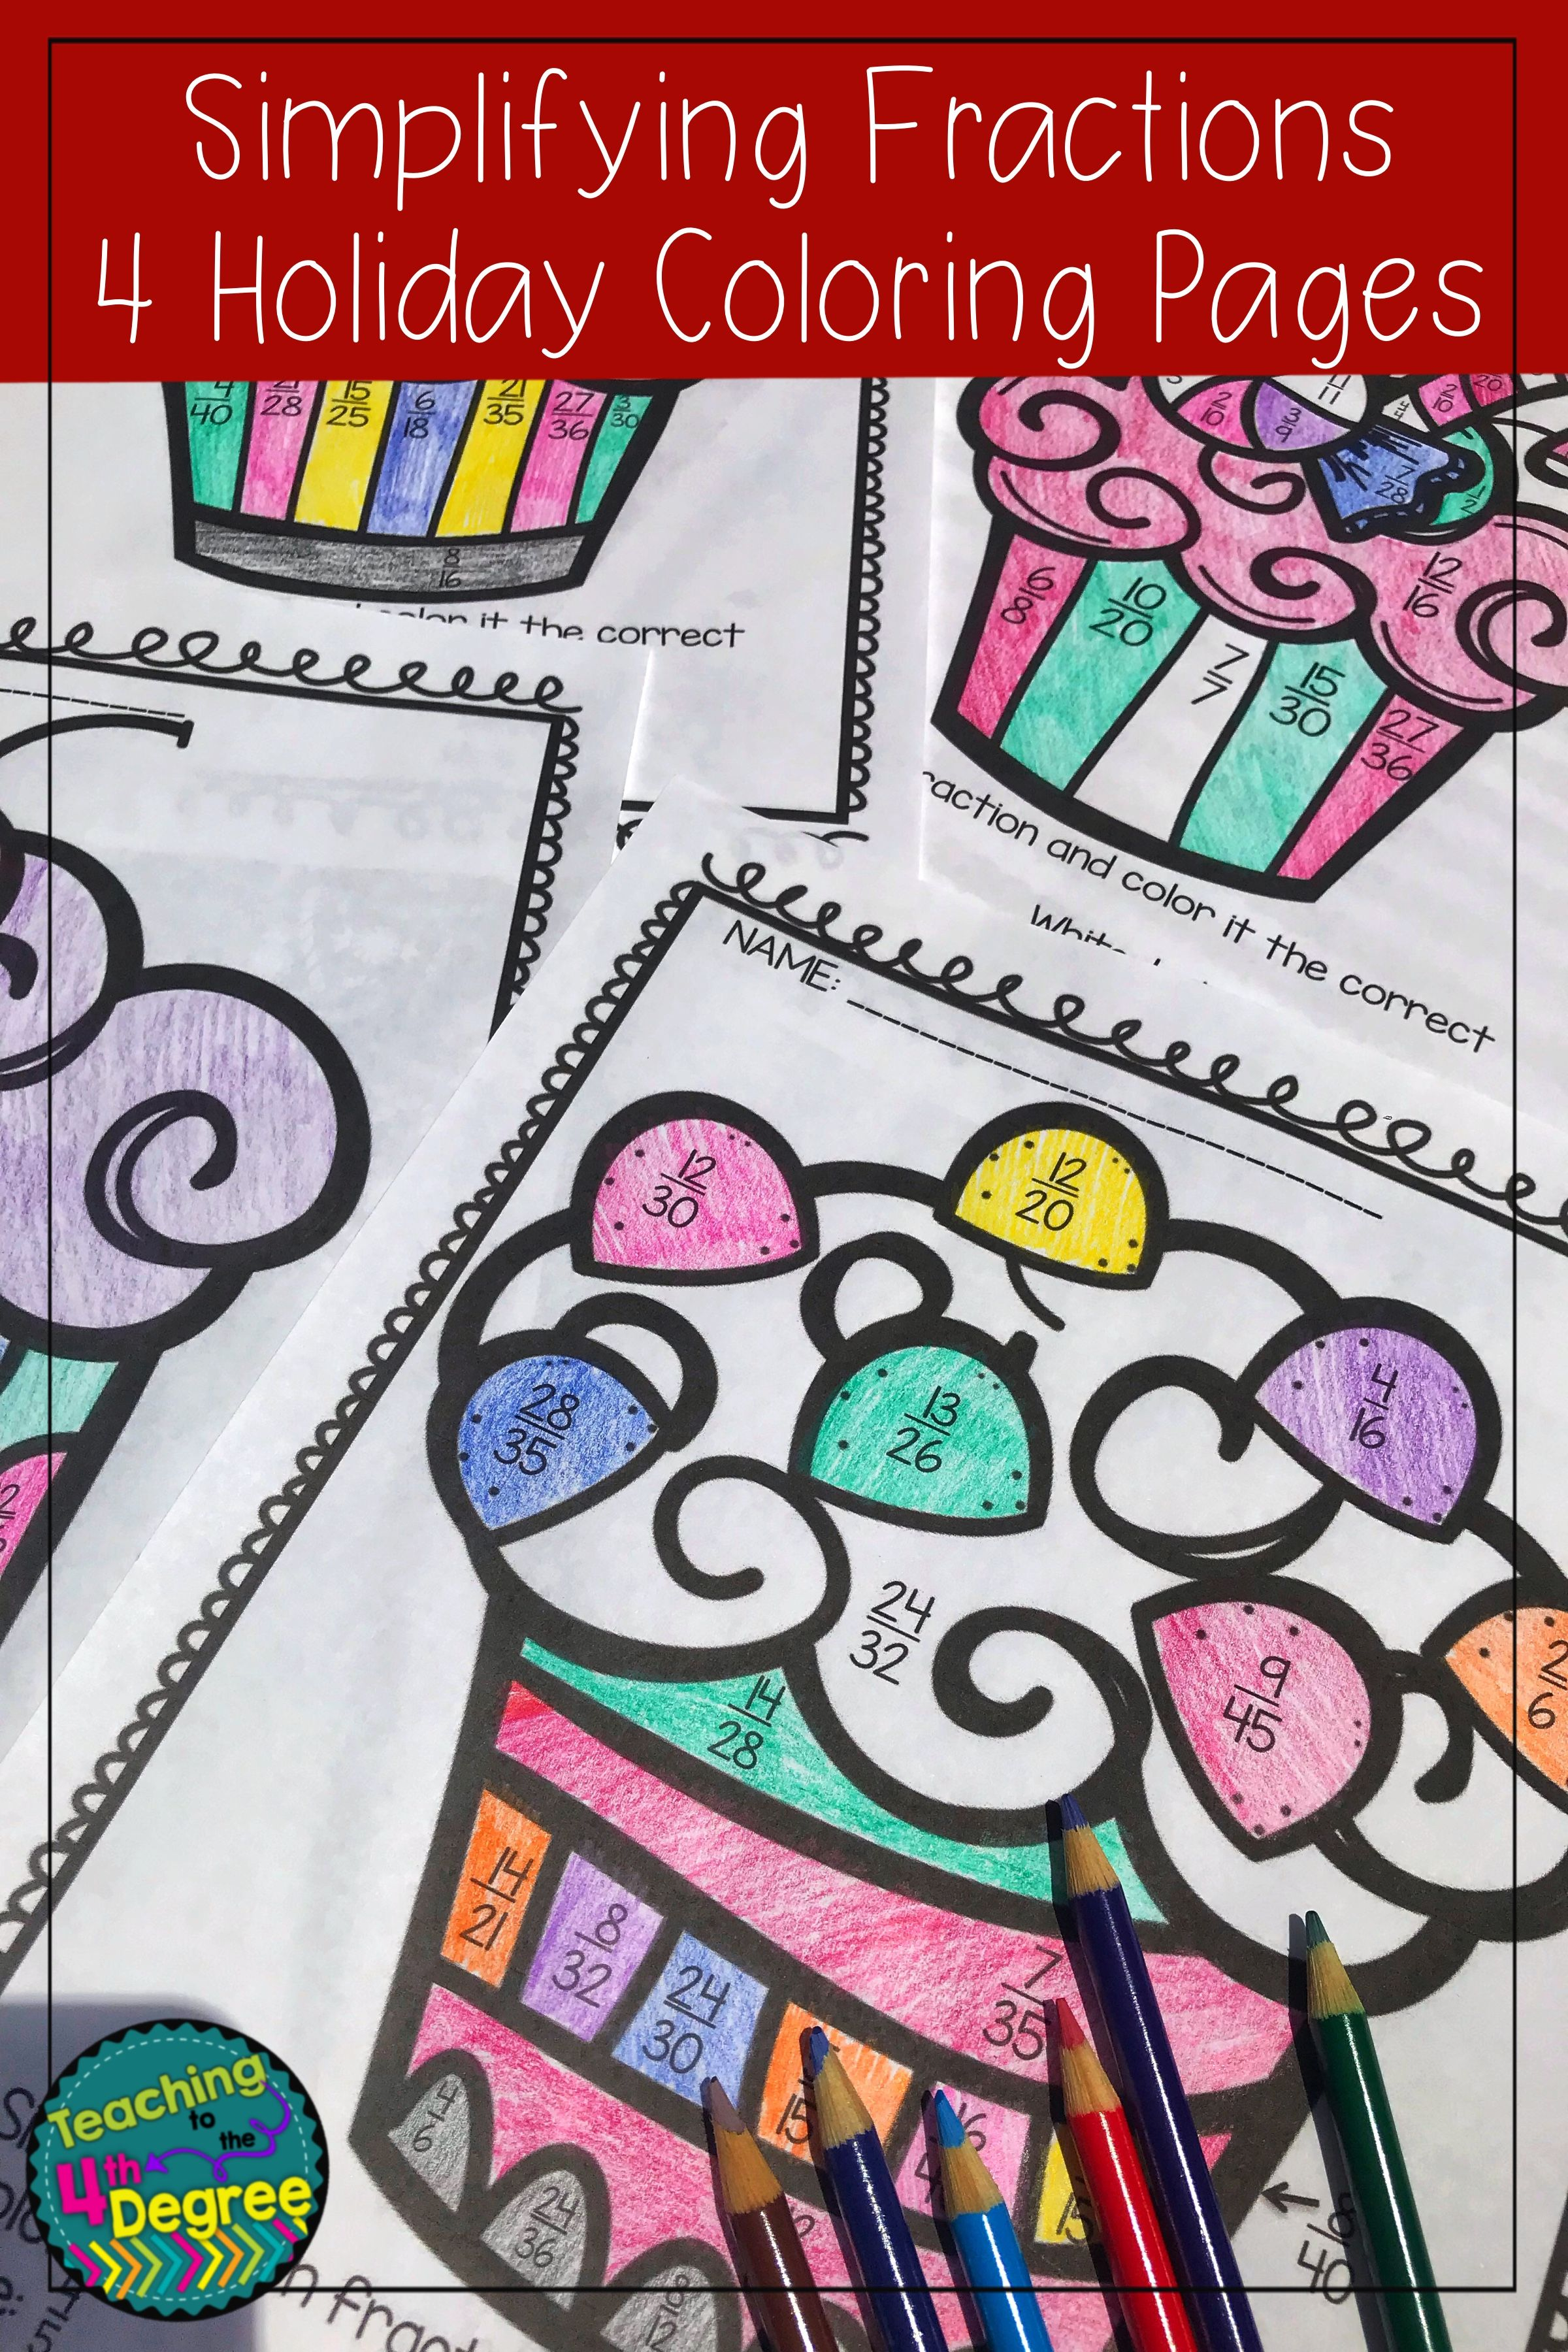 Simplifying Fractions Holiday Coloring Pages